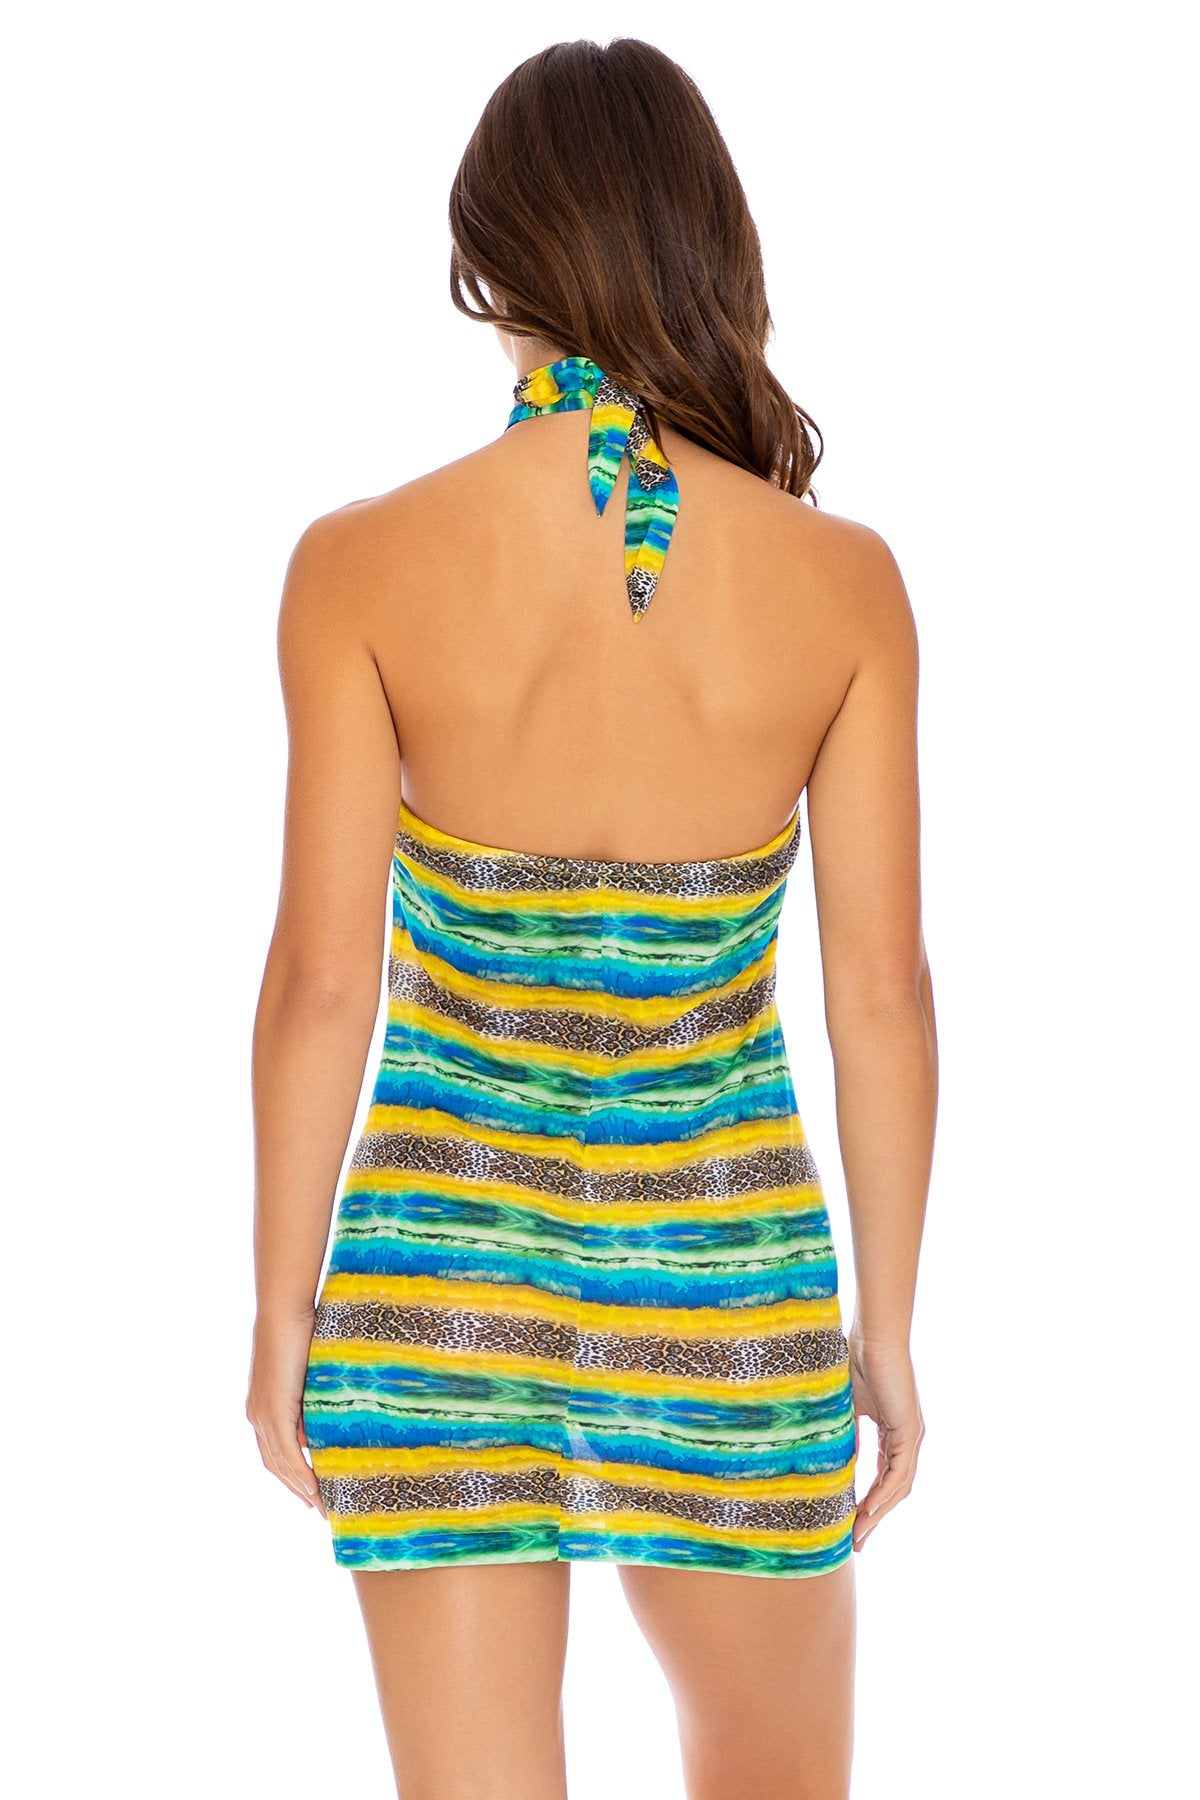 OLAS INFINITAS - Scarf Top Short Dress • Multicolor